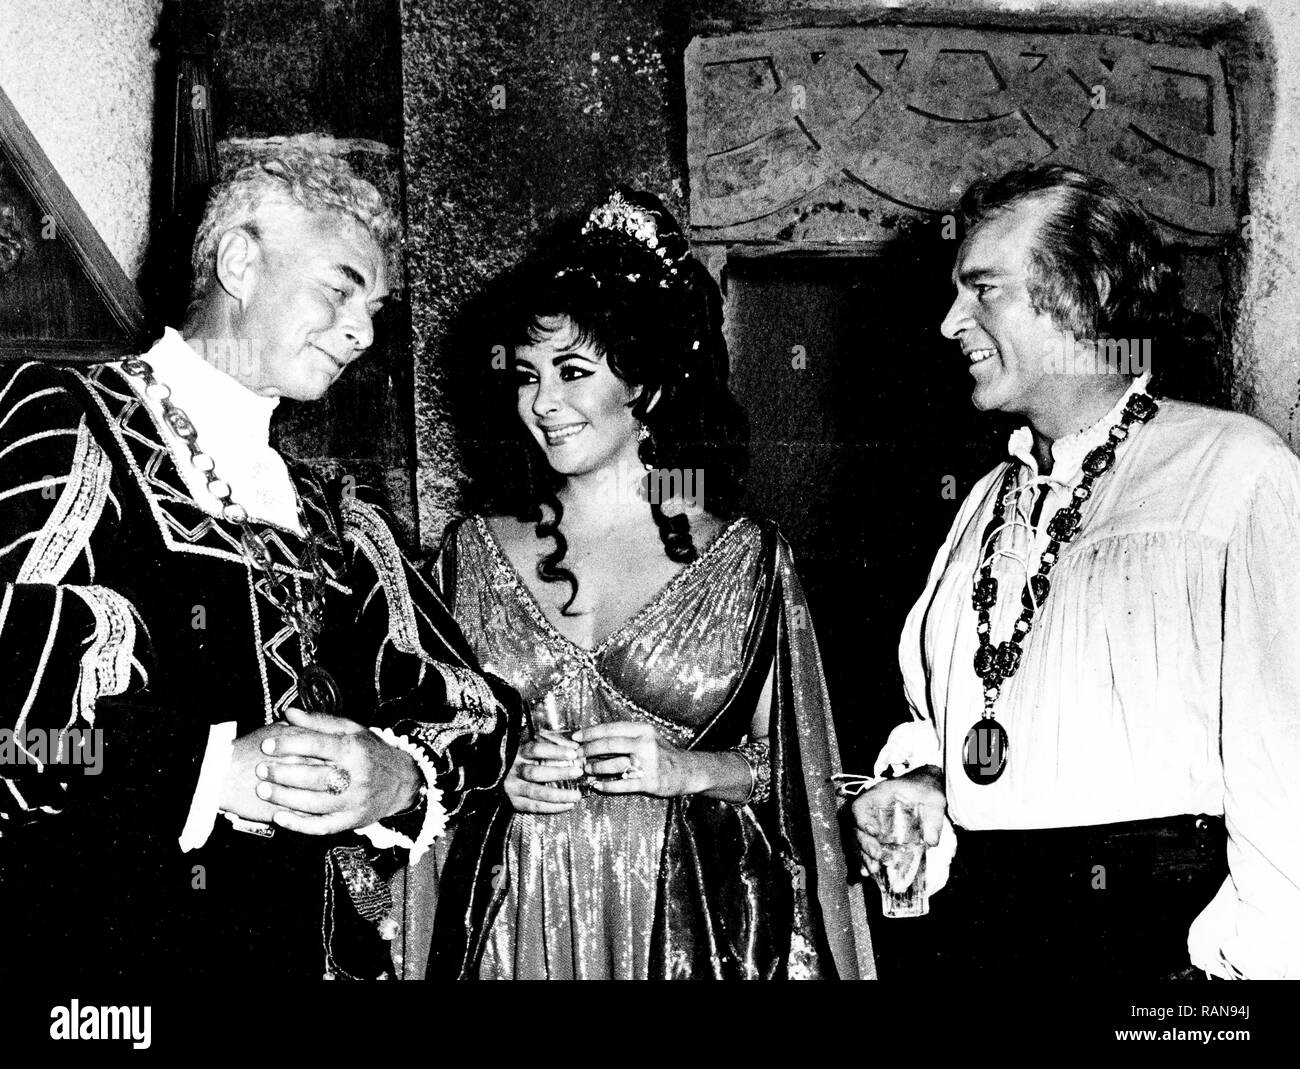 elizabeth taylor, richard burton, on set of the movie doctor faustus, 1967 - Stock Image